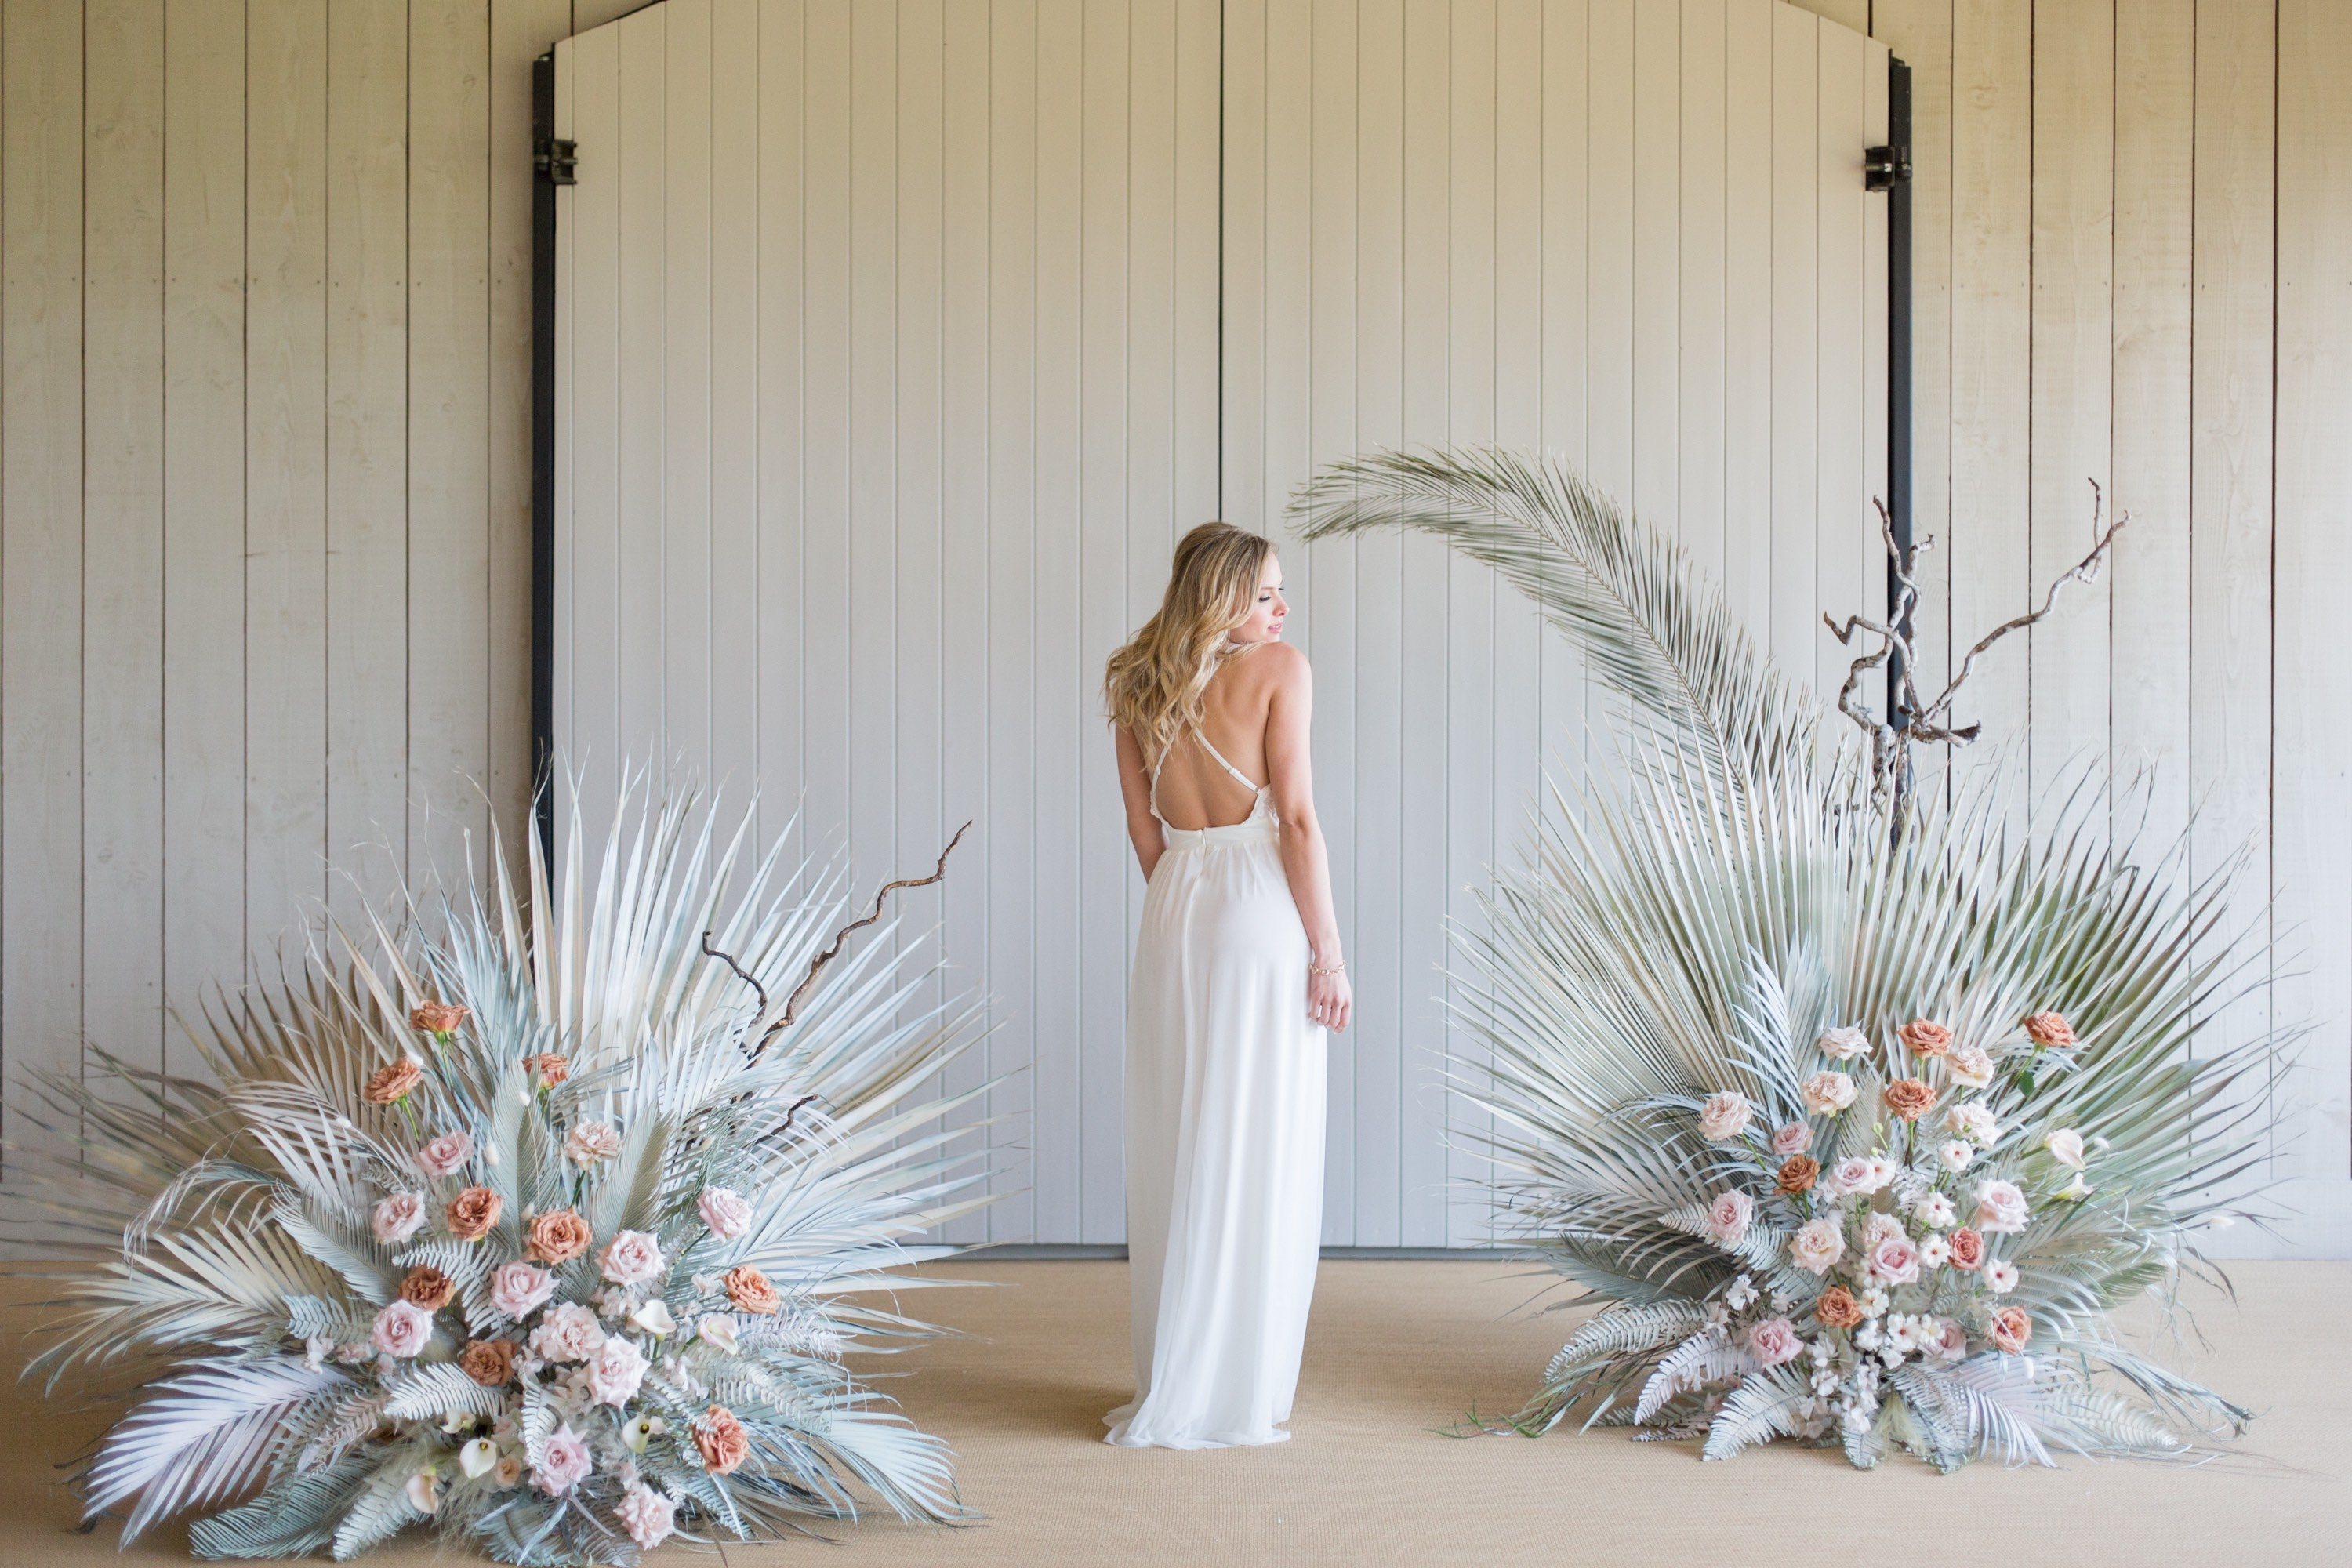 Strappy cross back wedding gown from Luella's Bridal